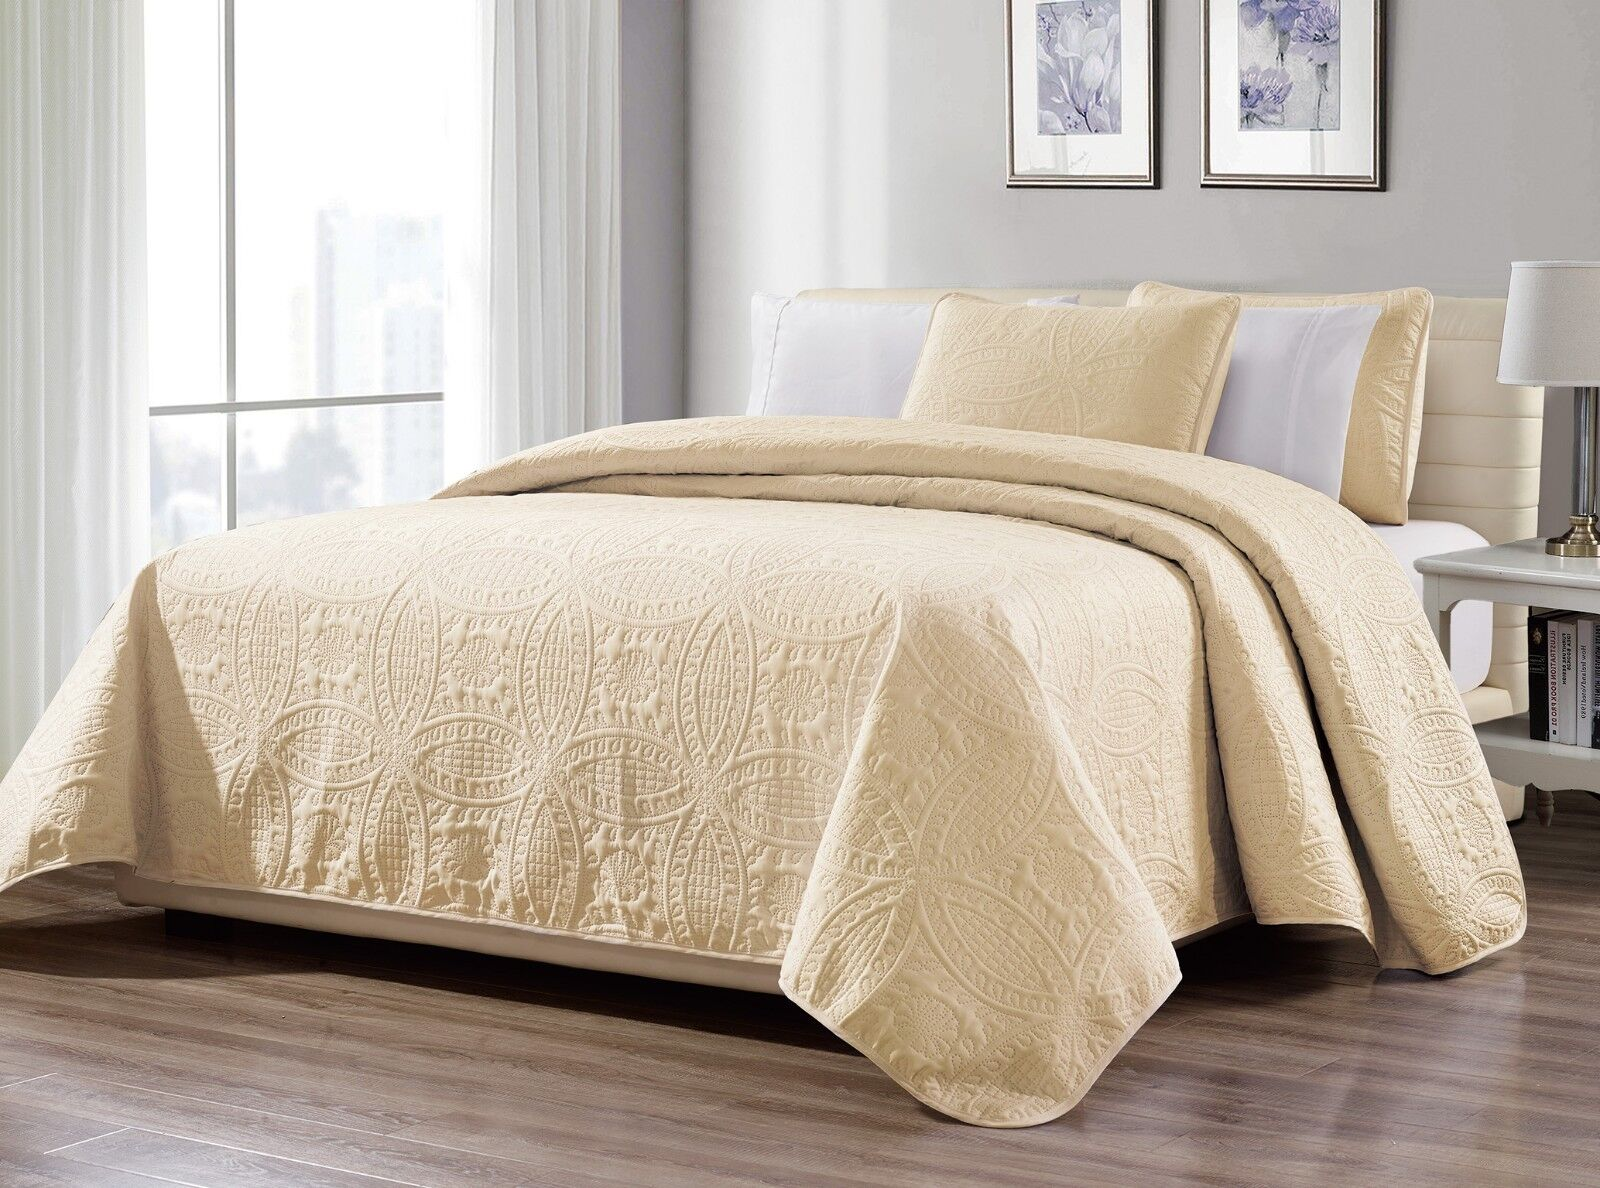 Fancy Linen Embossed OverGrößed Coverlet Bedspread Set Ivory All Größes New